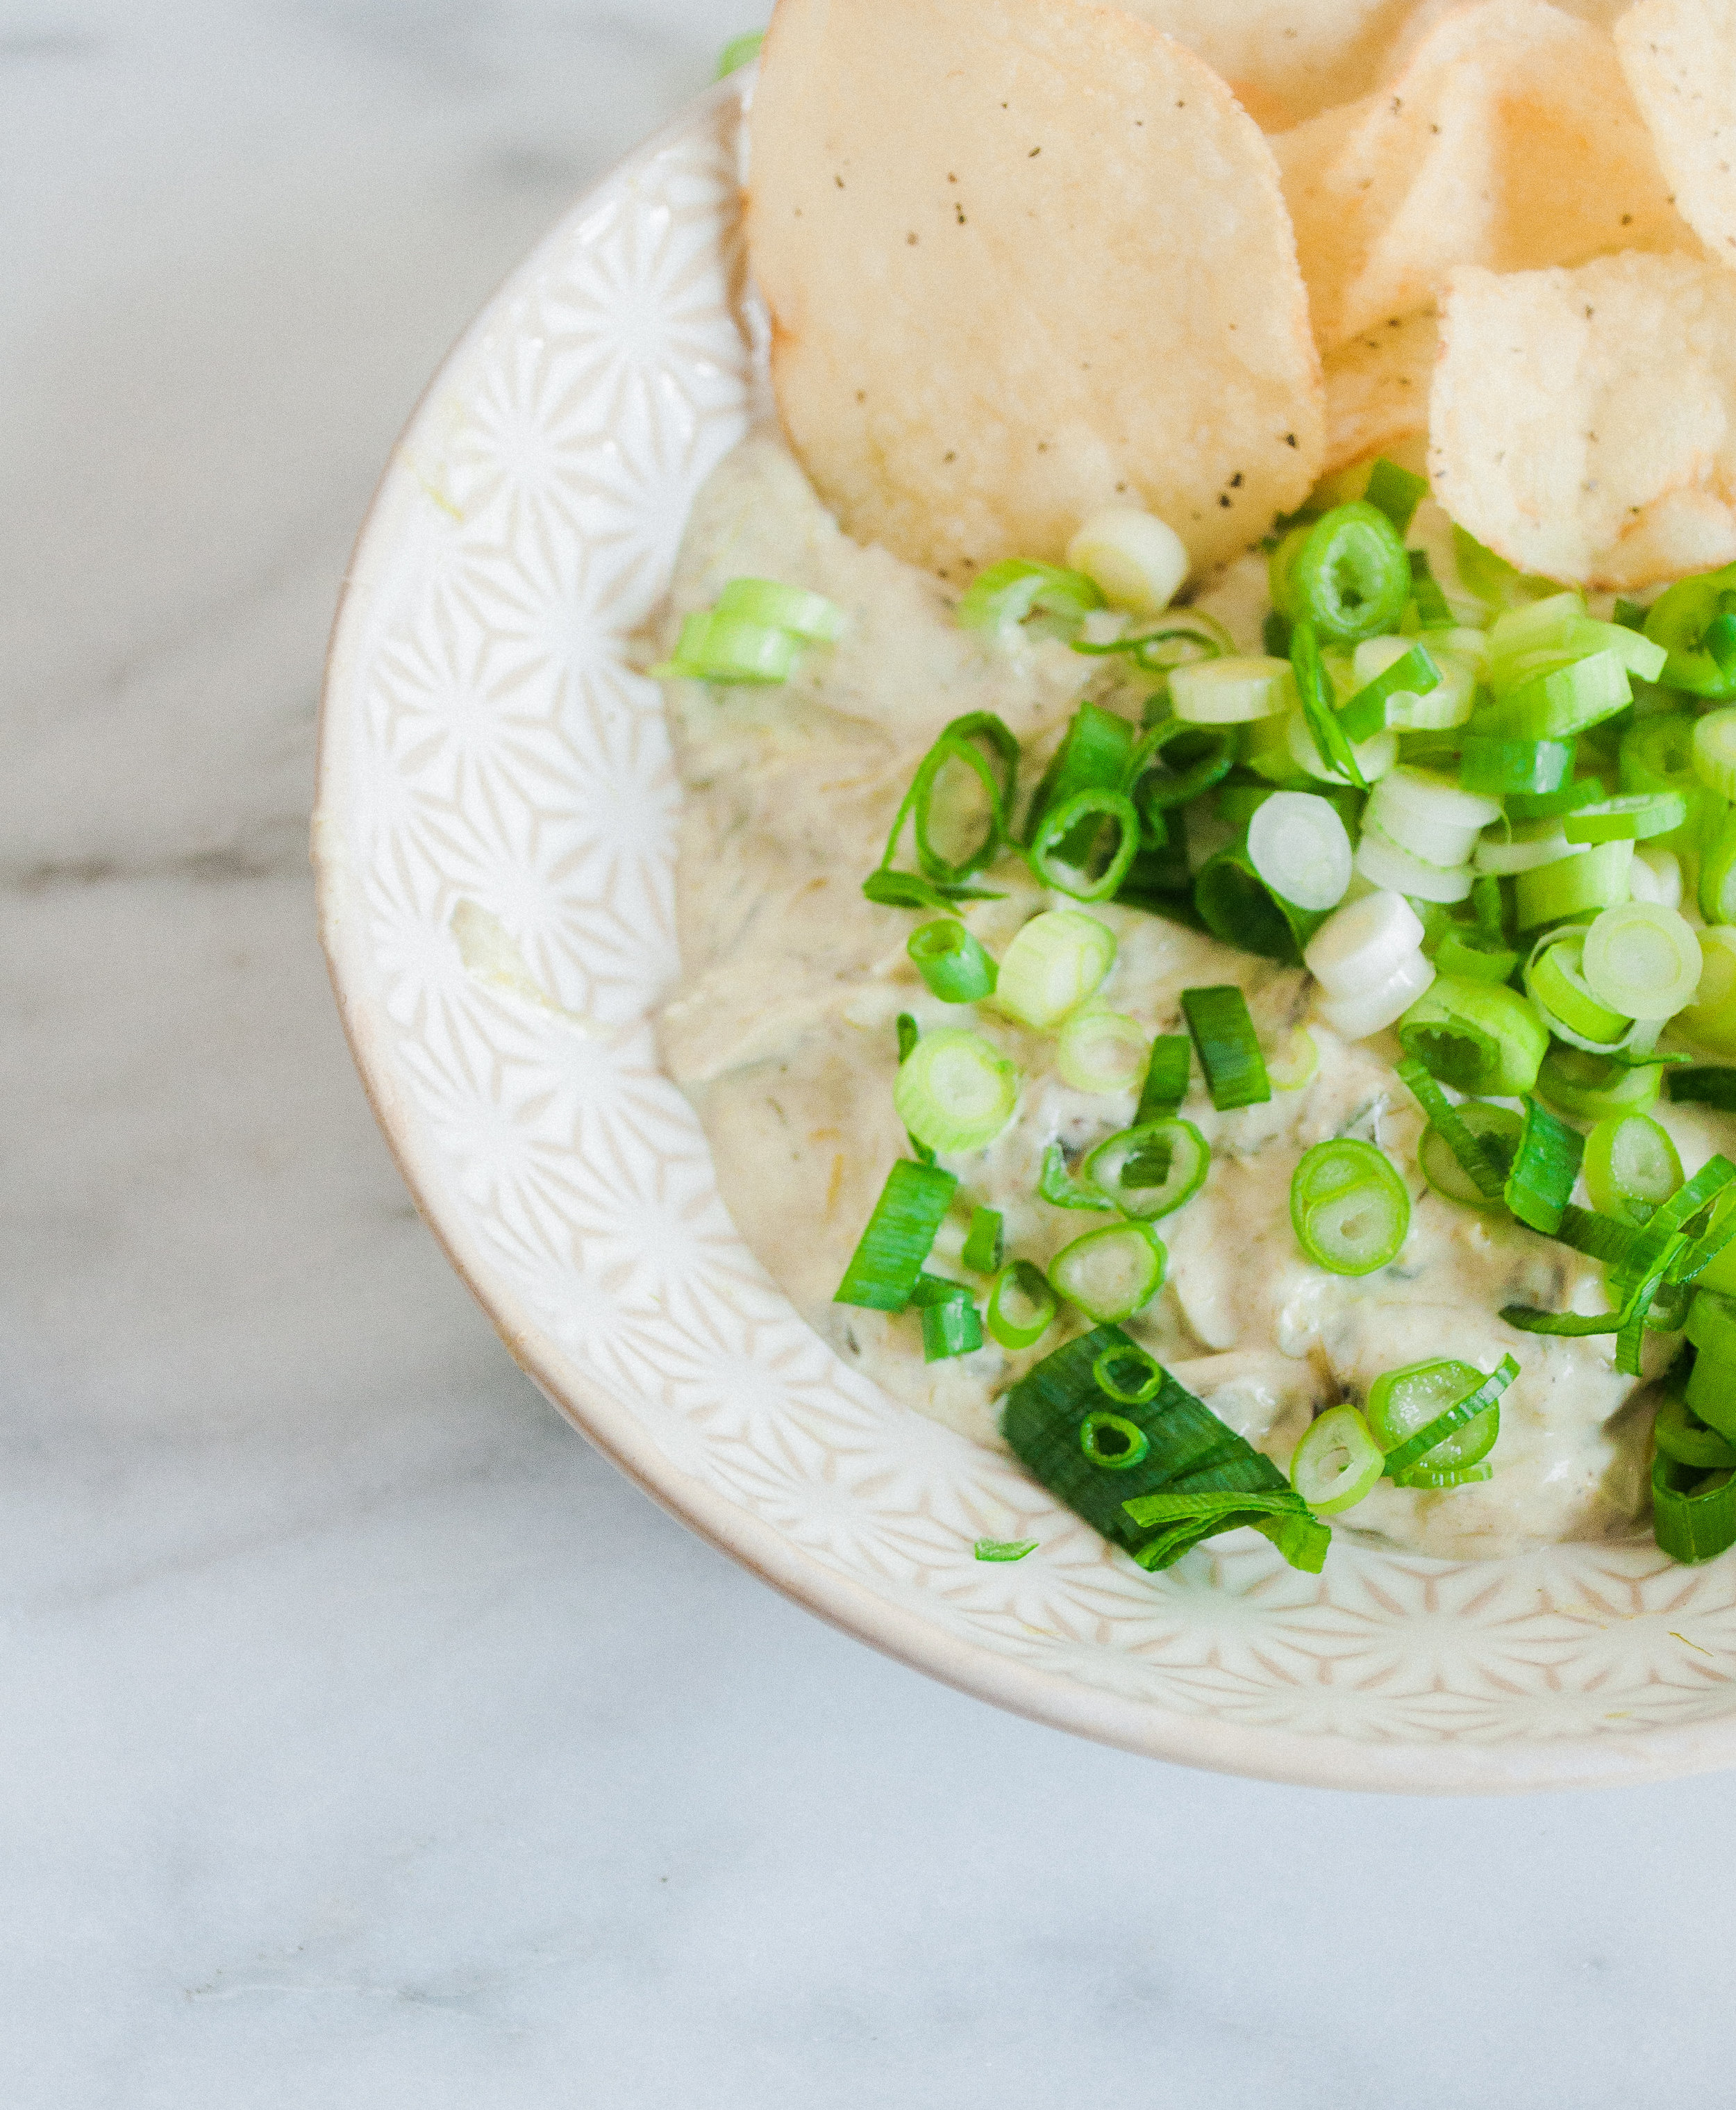 Summerfield Delight by Meg Summerfield   Review of Small Victories Cookbook by Julia Turshen   Roasted Scallion and Chive Dip